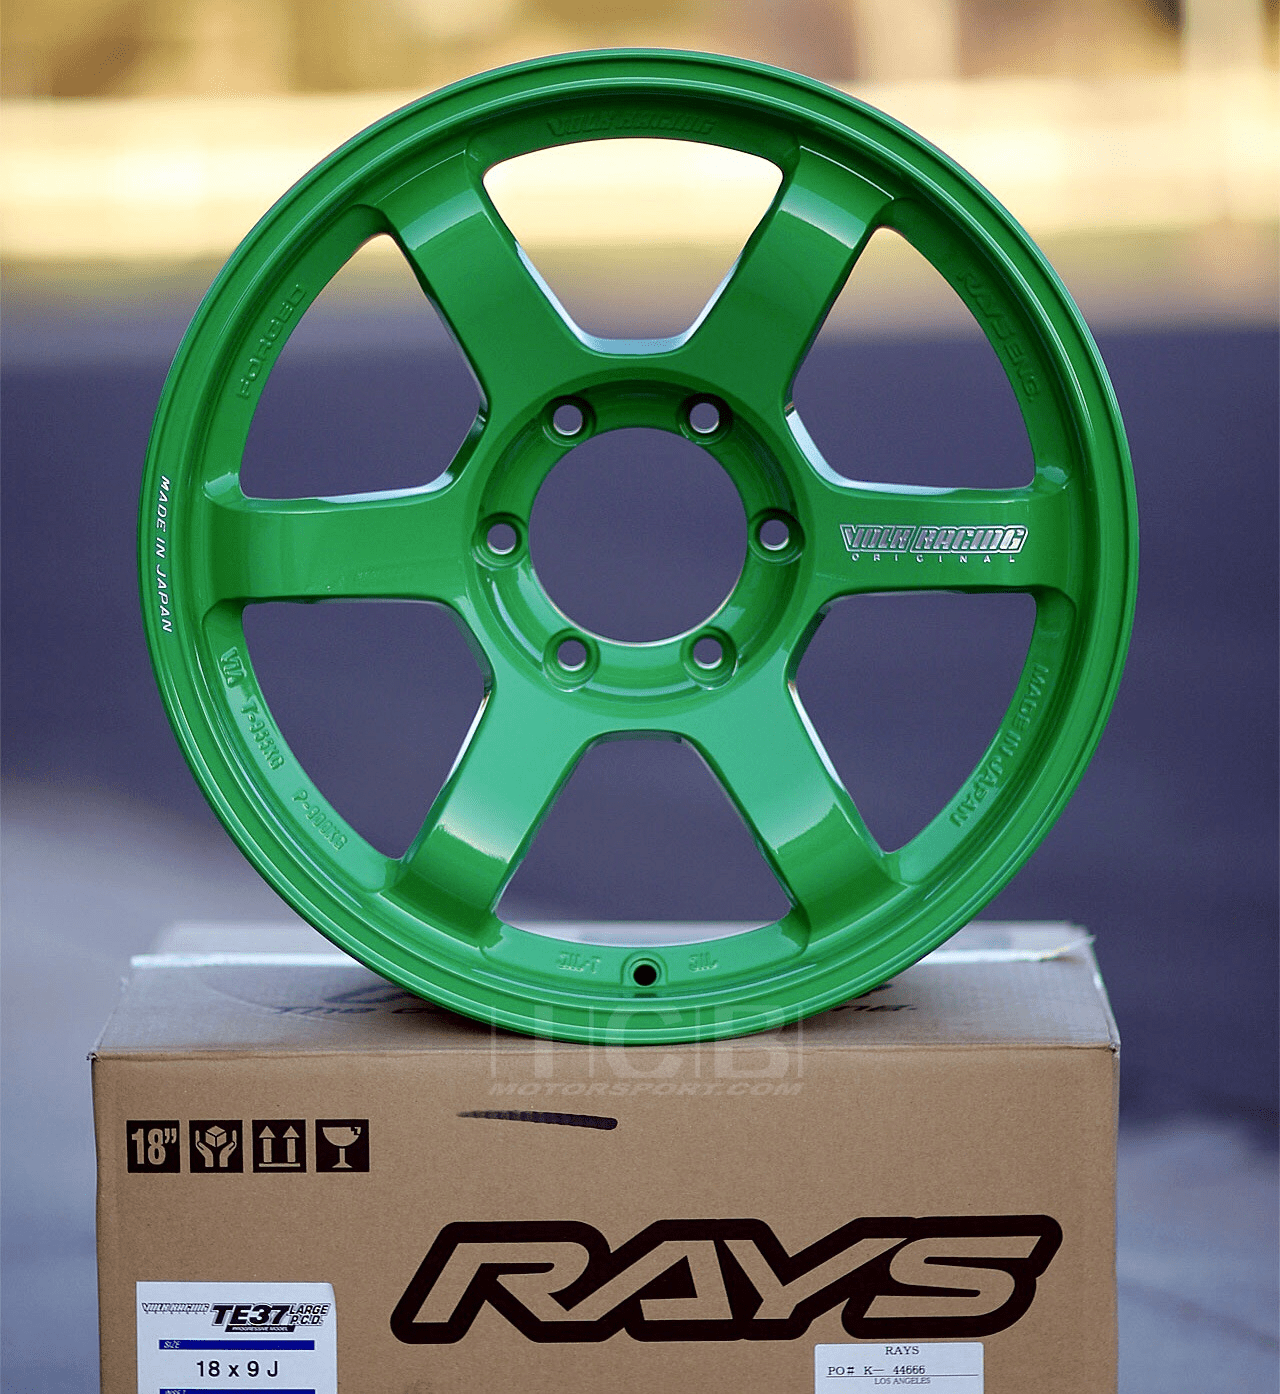 Rays Volk Racing TE37 Wheels 18X9 6X139.7 0 Offset Takata Green Large P.C.D. Progressive Model